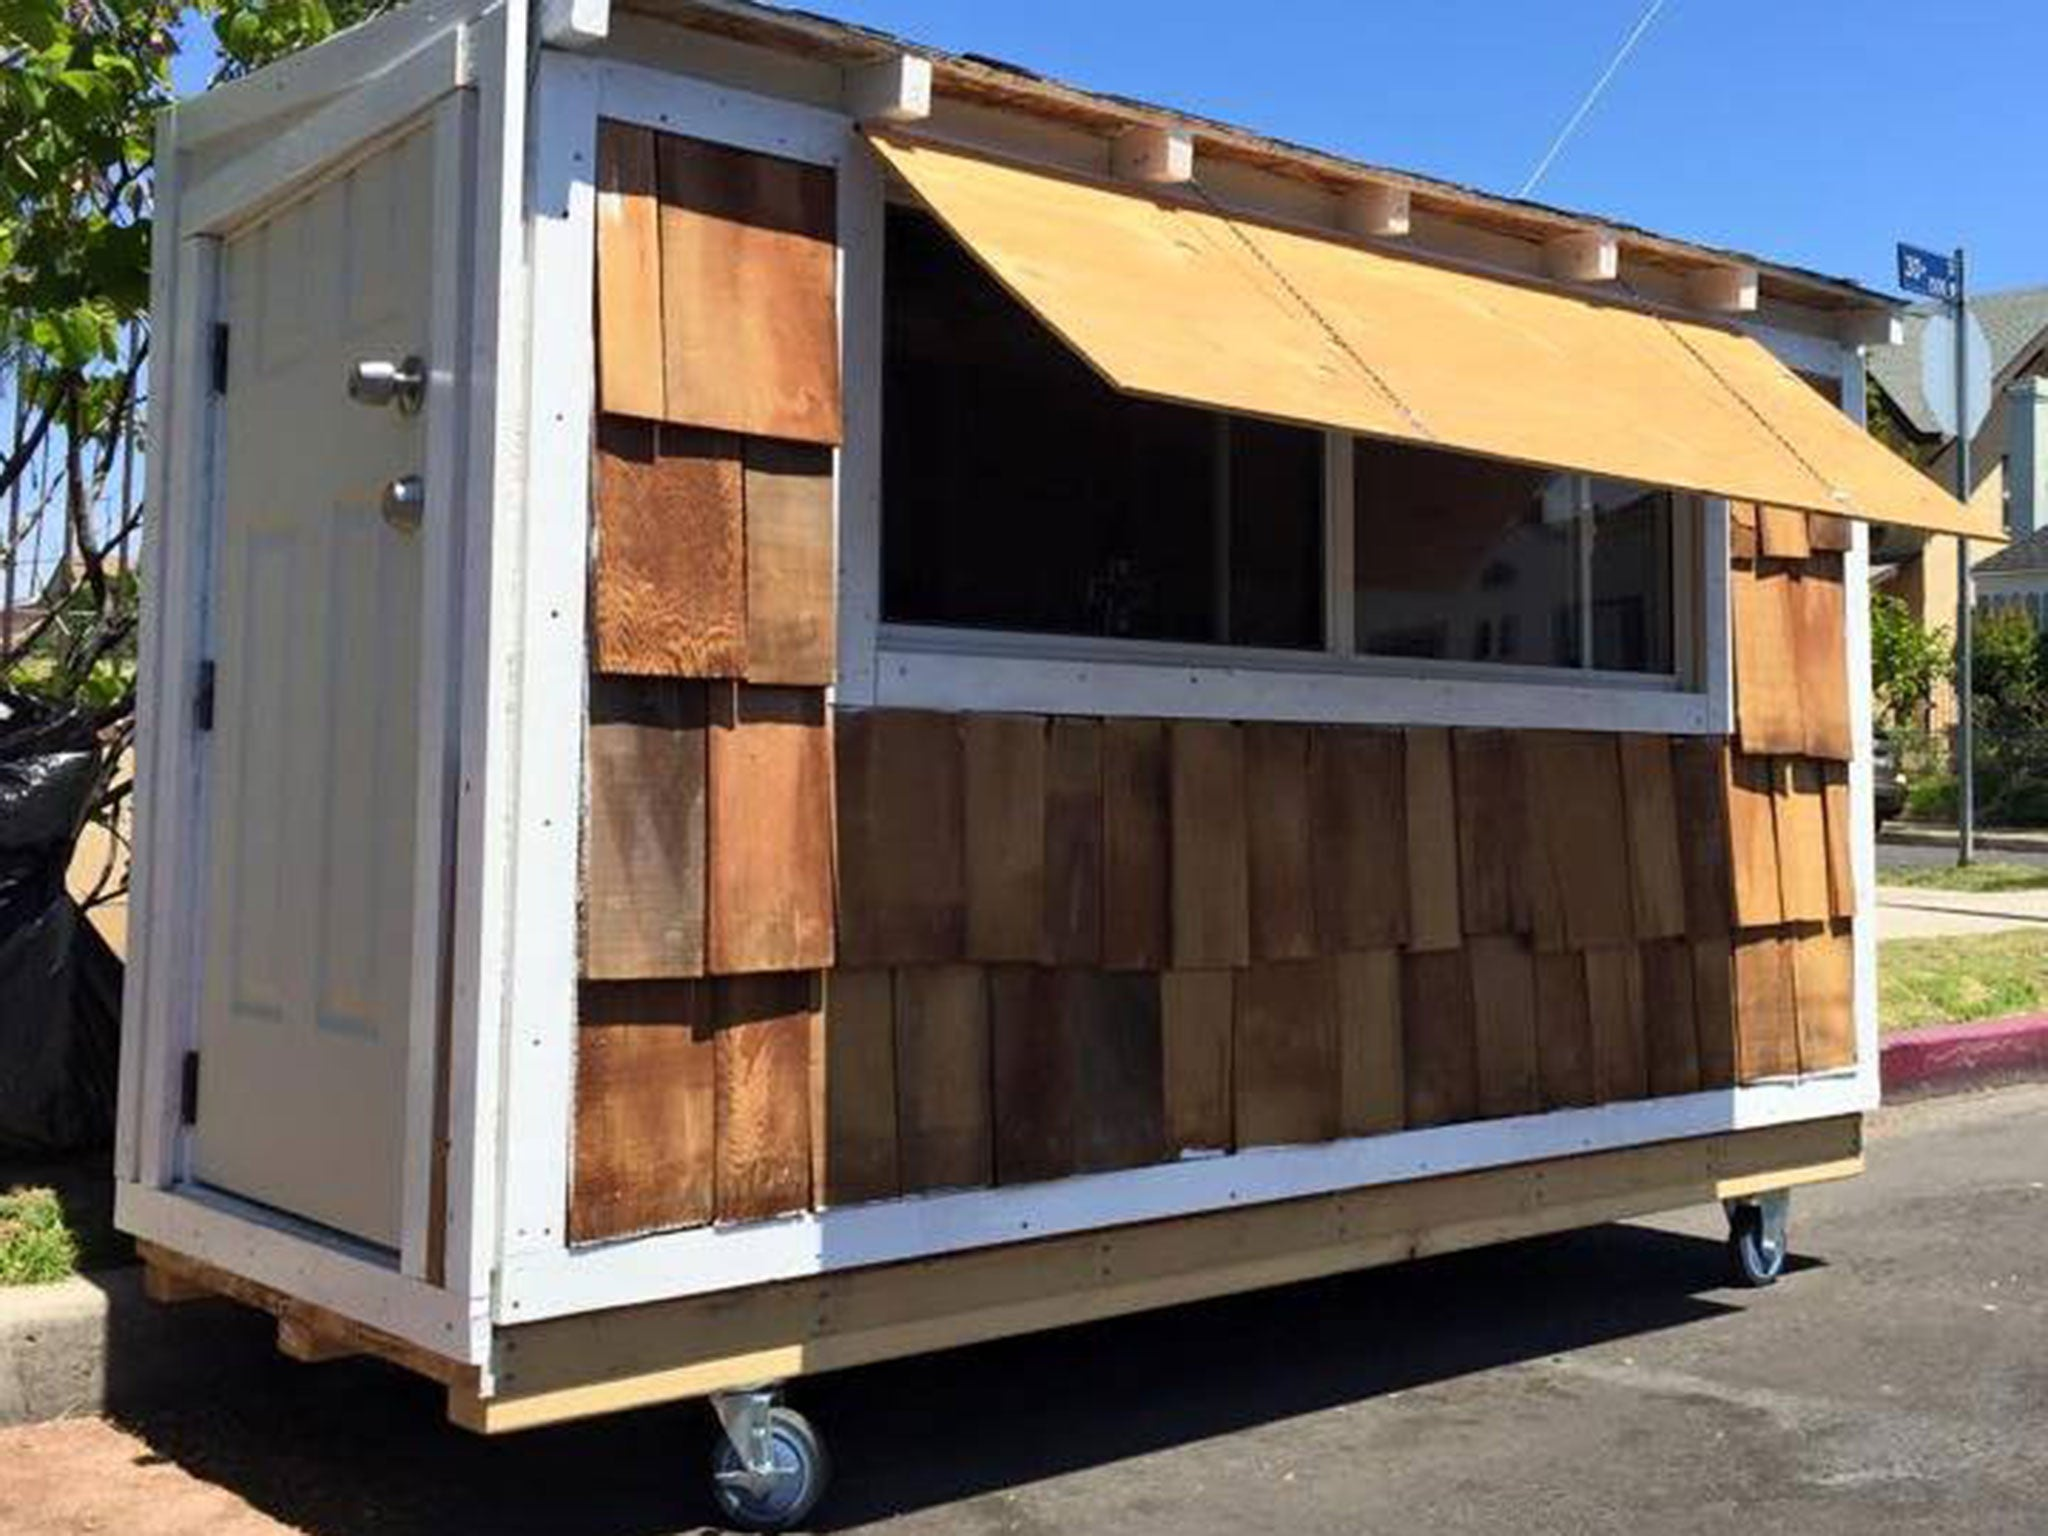 California man Elvis Summers builds tiny home on wheels for